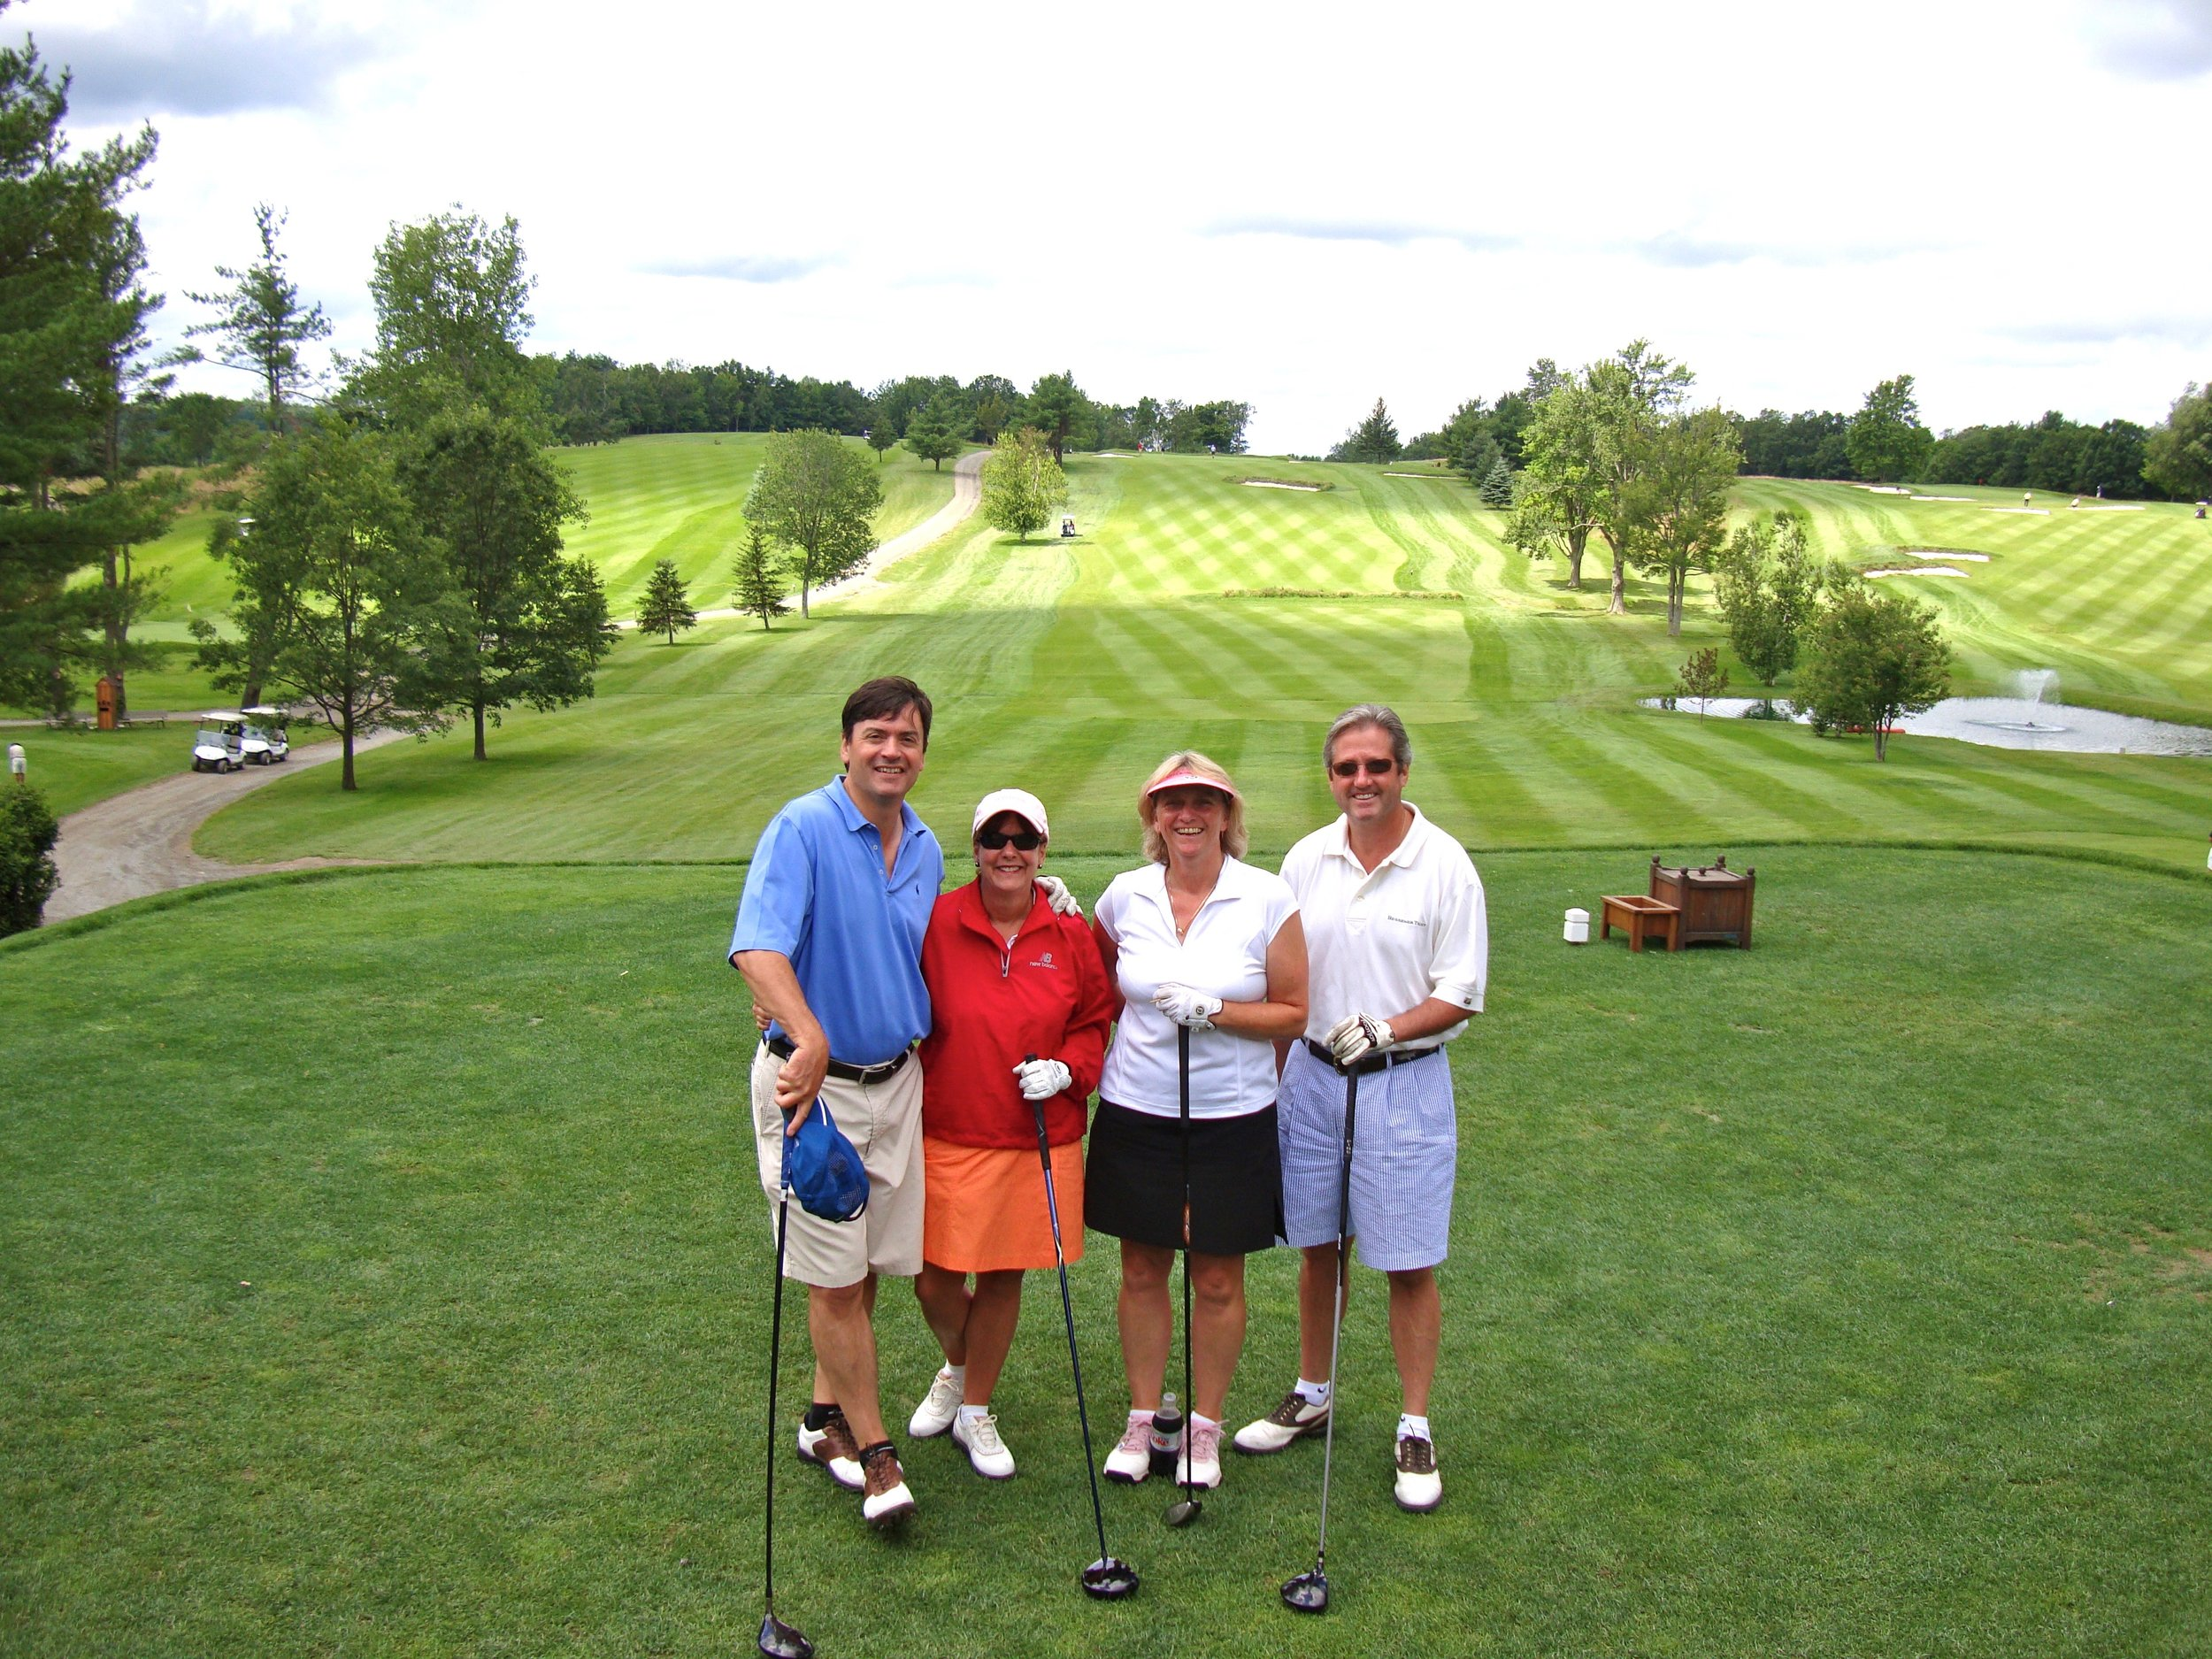 With our dear friends Clarke and Trish at the opening hole.